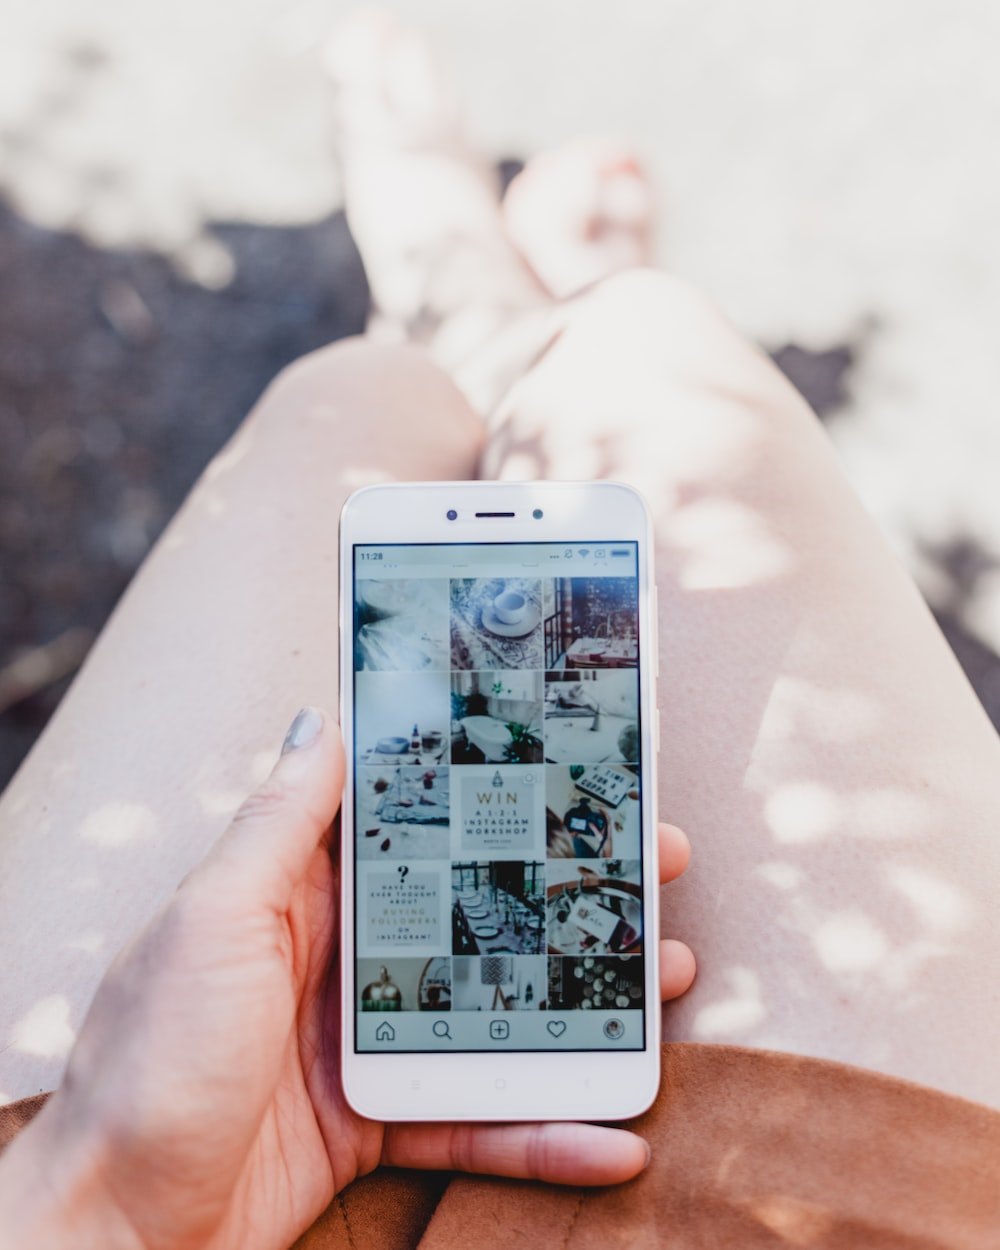 100 Instagram Pictures Hd Download Free Images On Unsplash